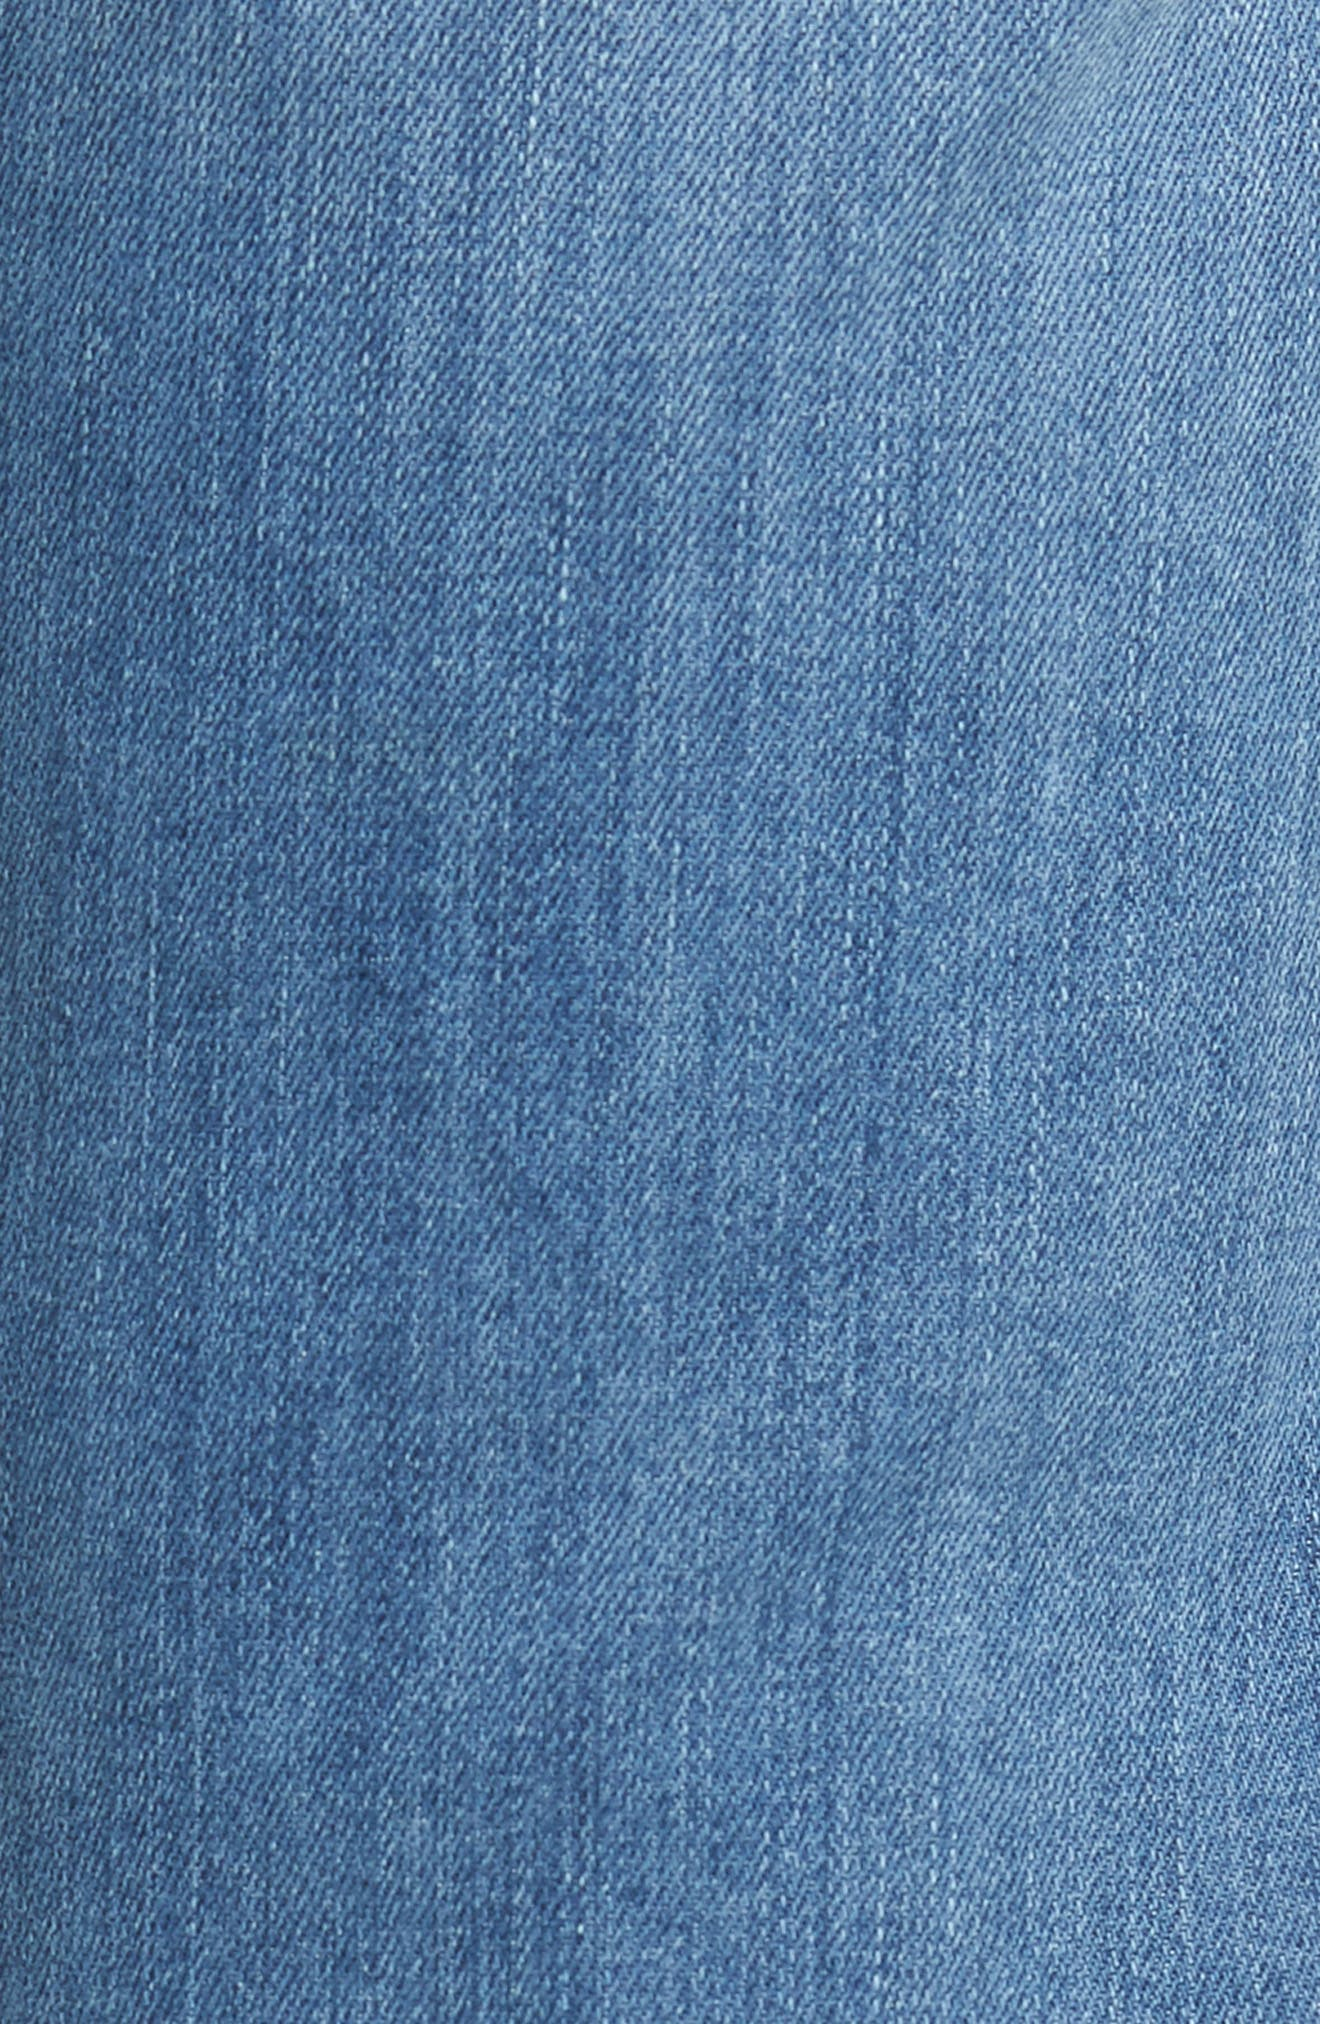 Jimmy Slim Straight Fit Jeans,                             Alternate thumbnail 5, color,                             400